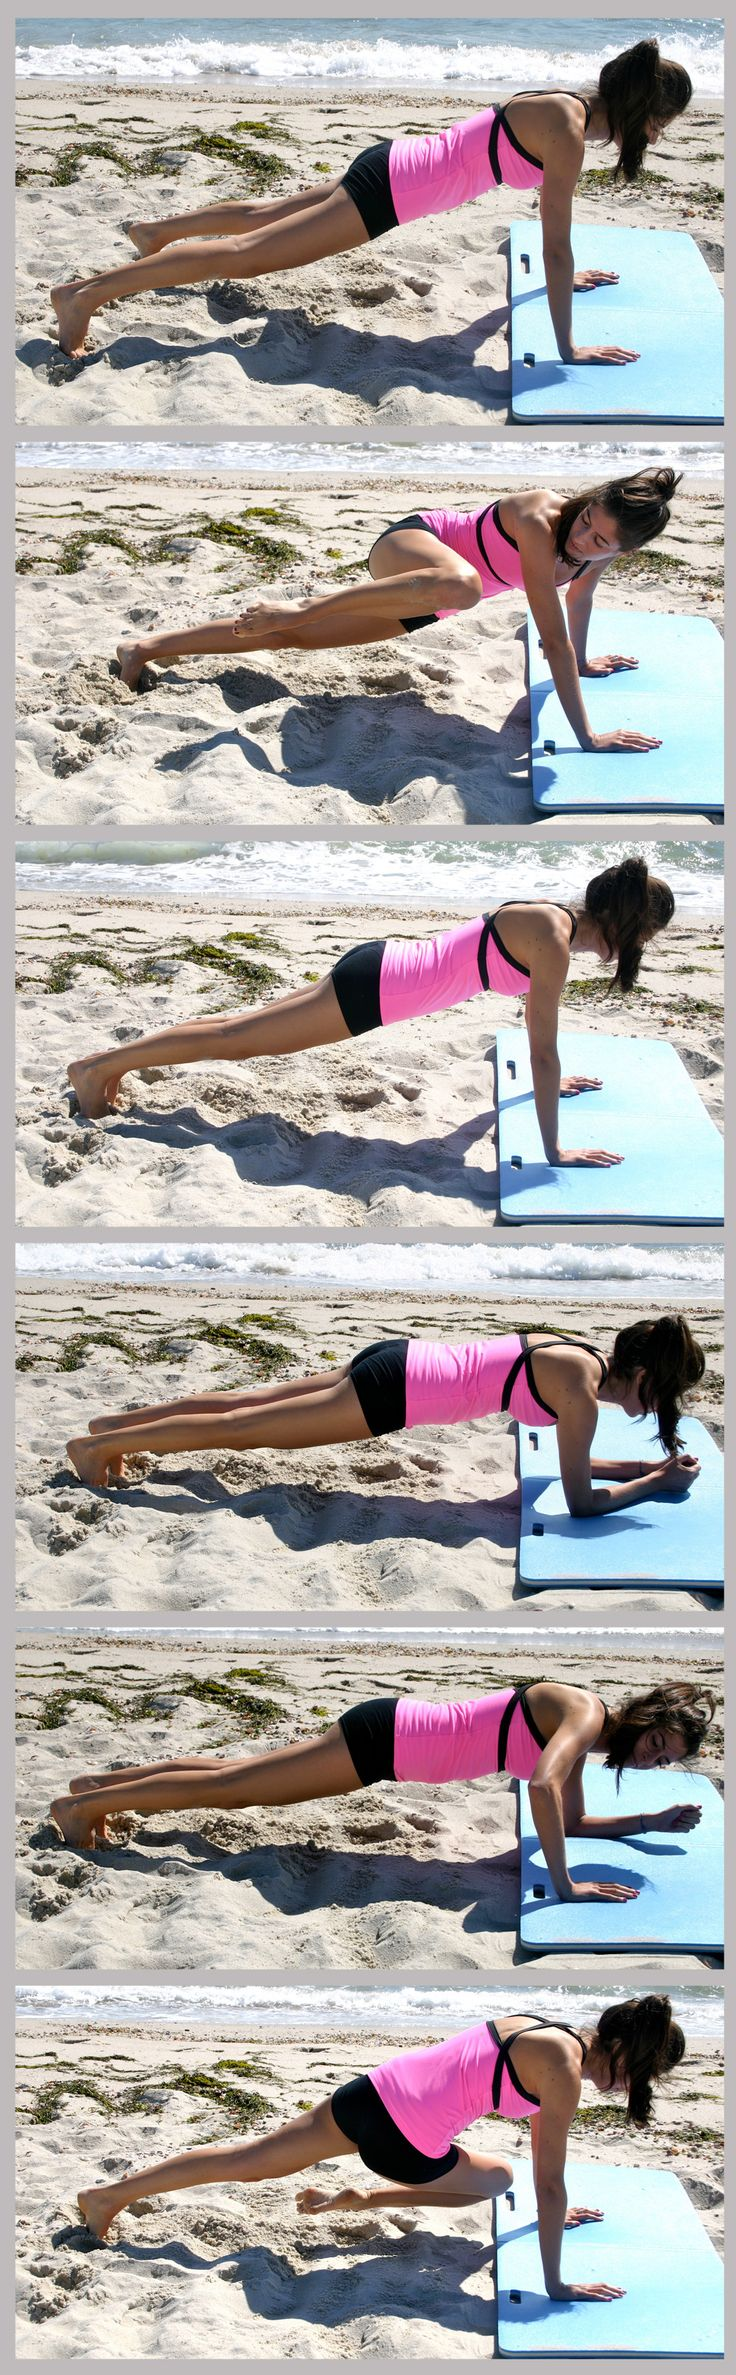 FEEL THE BURN! Plank Workout - Do each of the 6 moves for 20 seconds. Repeat entire 2-minute circuit 3 times, taking a 30-second break in between each round. This is going to SUCK but show great results!: 20 Second, Entir 2 Minute, Abs Workout, 2 Minute Circuit, Workout Tutorials, Repeat Entir, 30 Second Break, Take A Break, Planks Workout